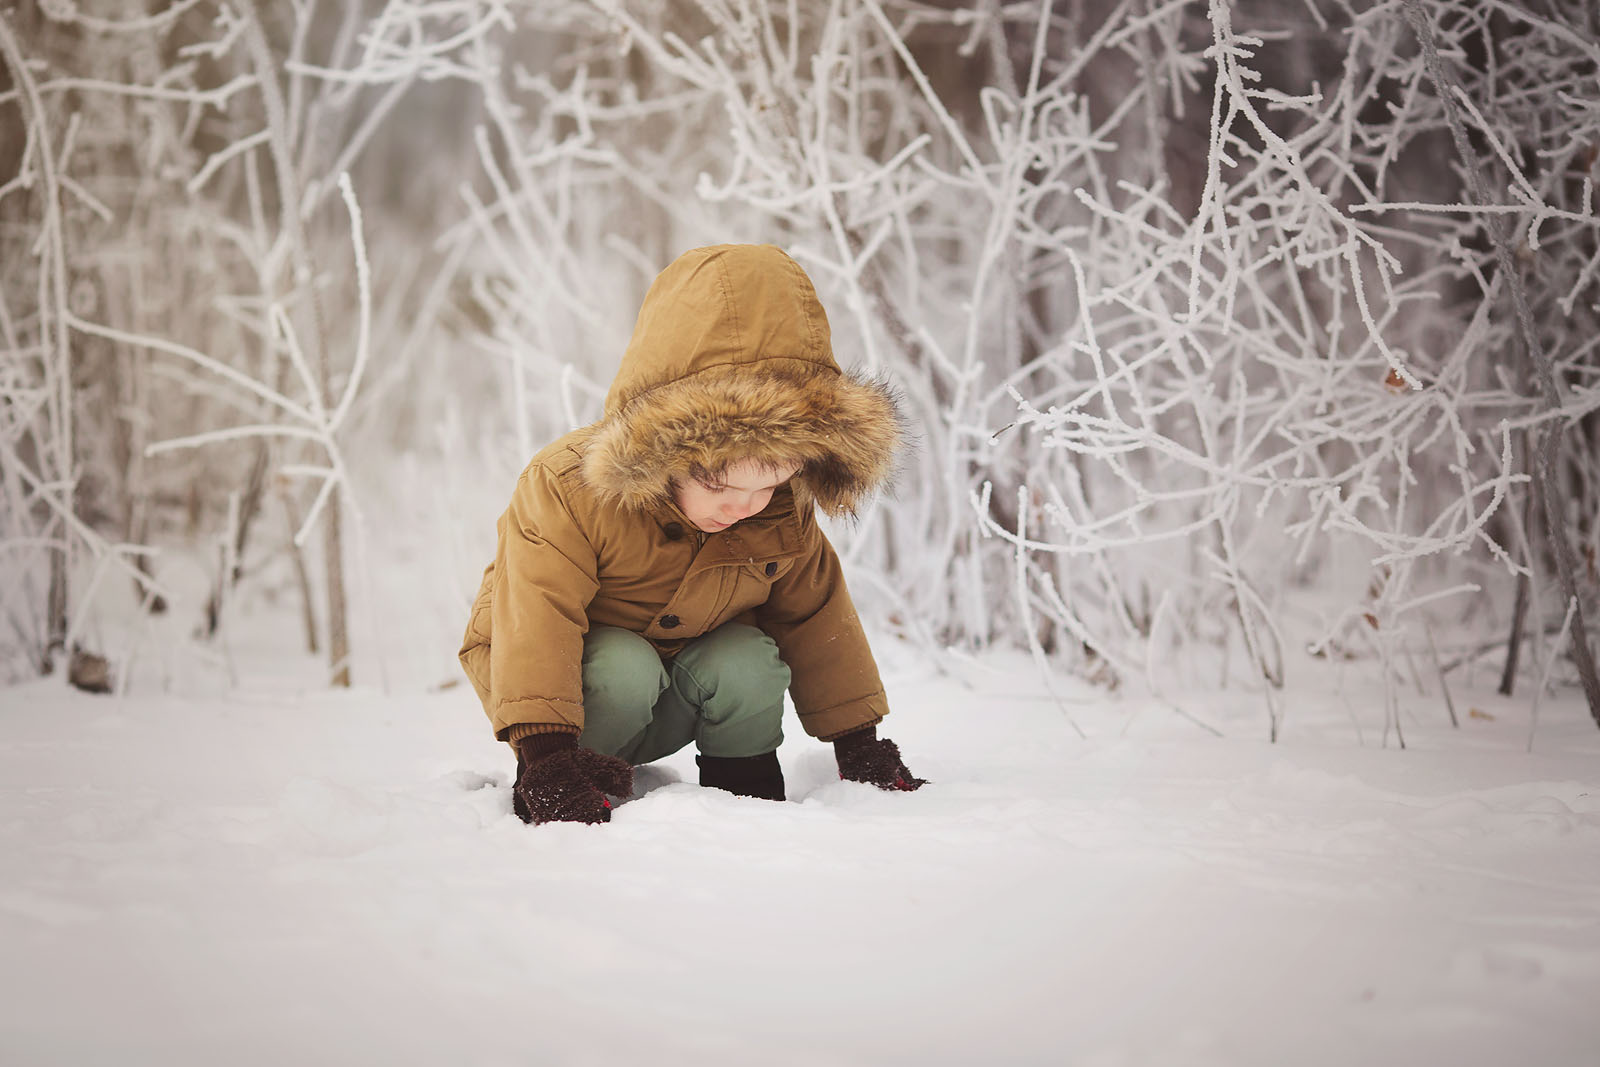 pic of kid playing in snow by Amber Walder